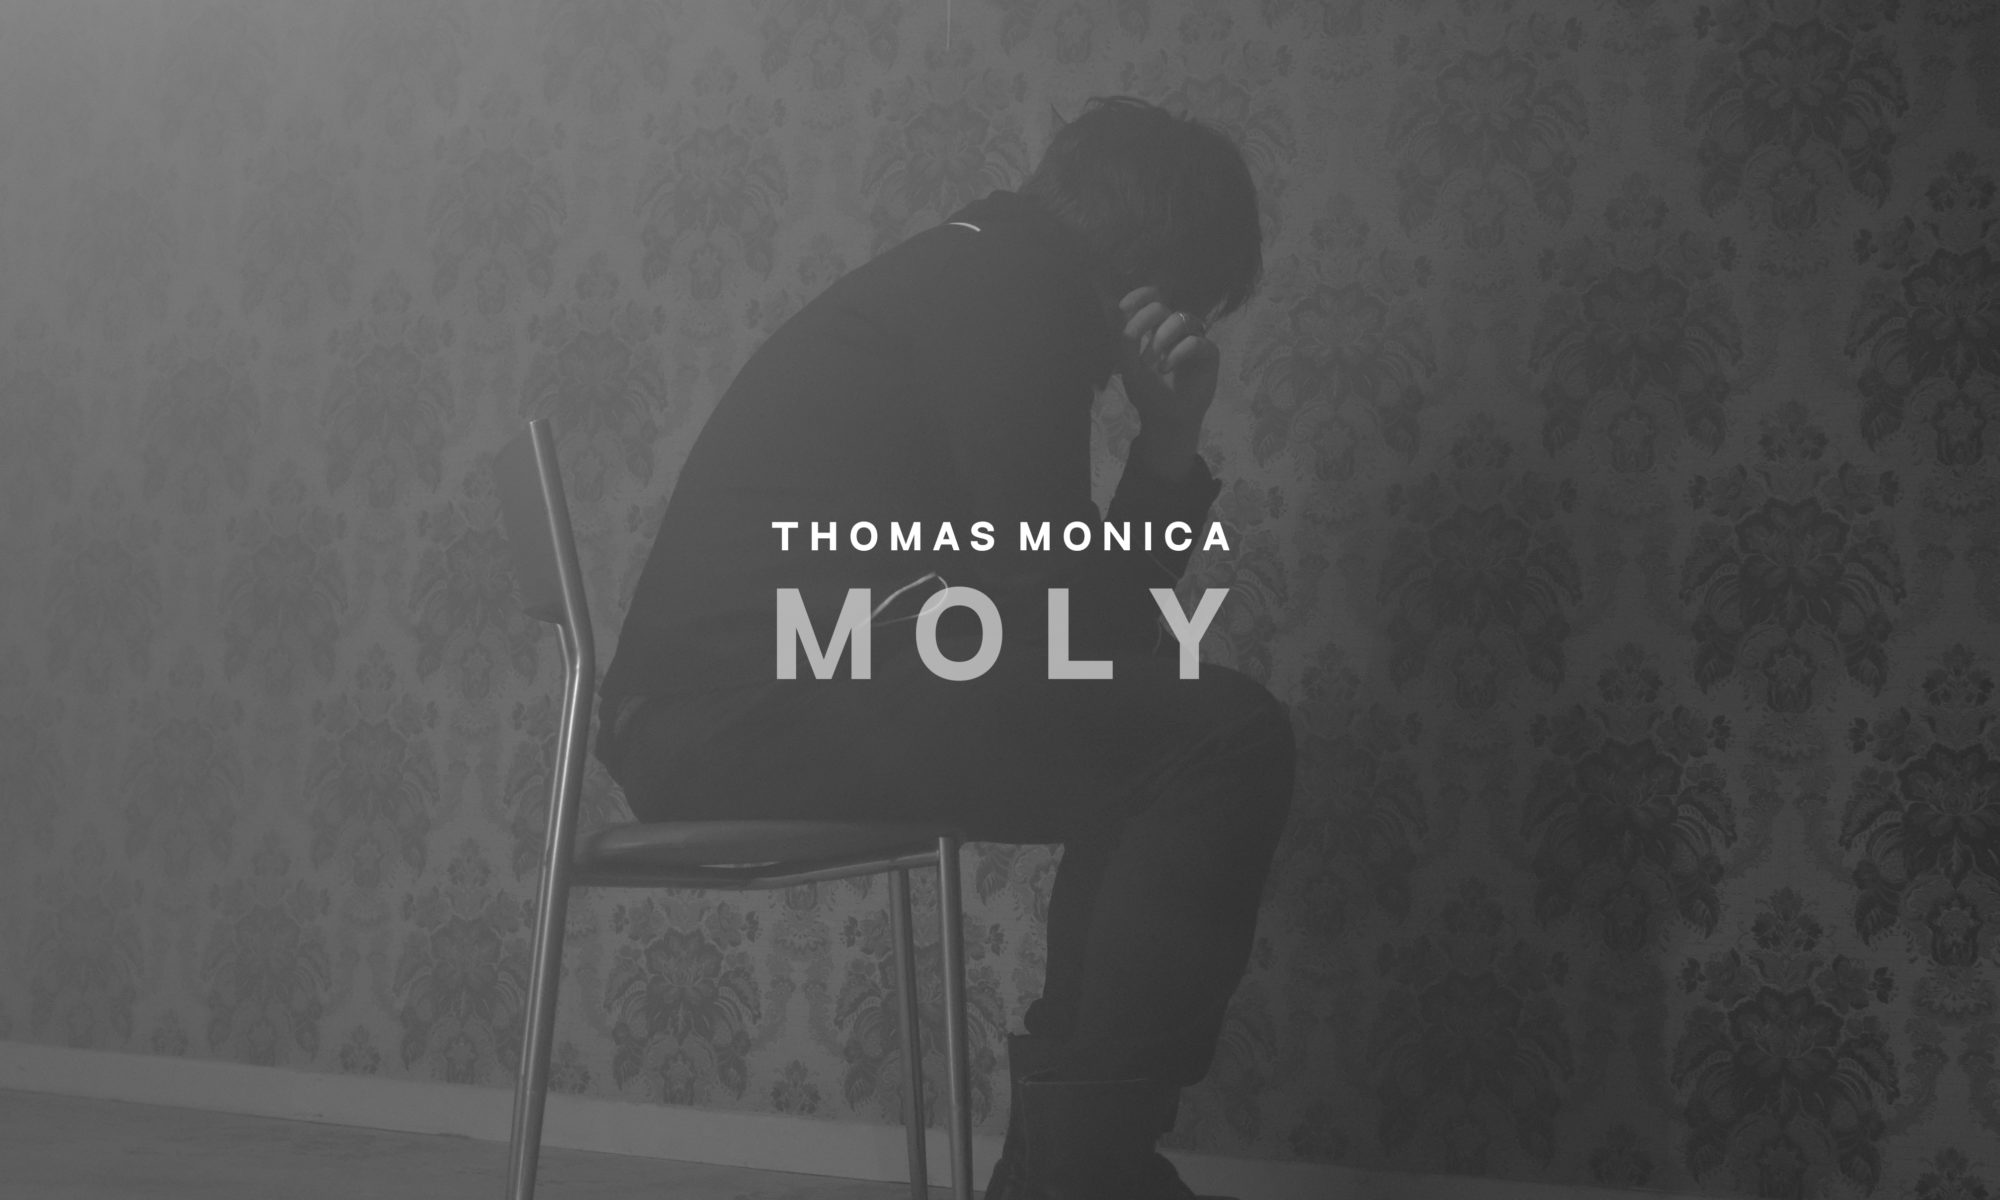 Thomas Monica - single moly